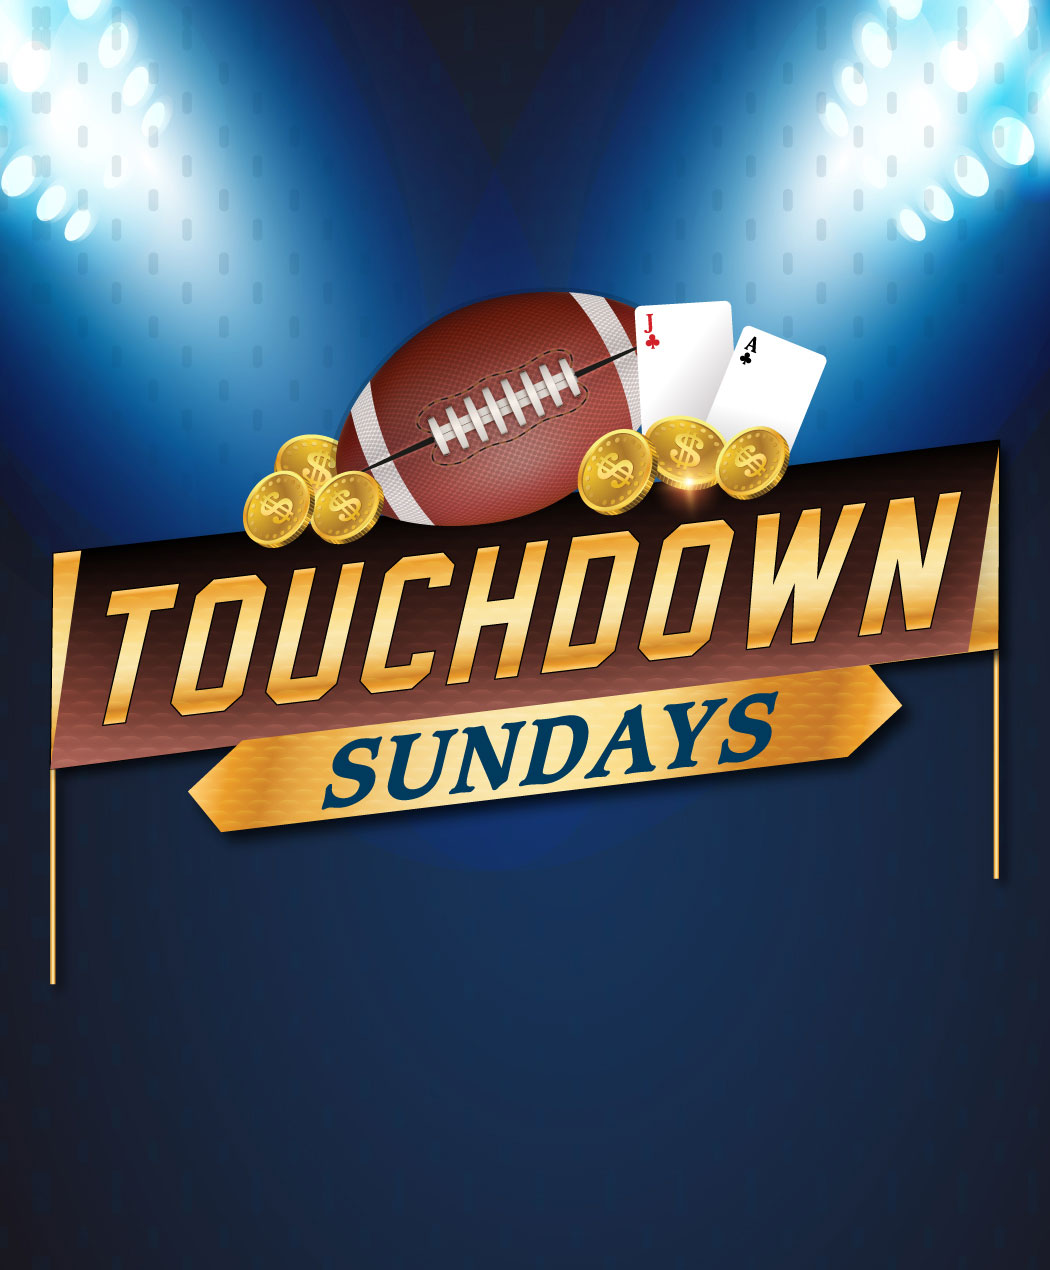 Touchdown Sundays